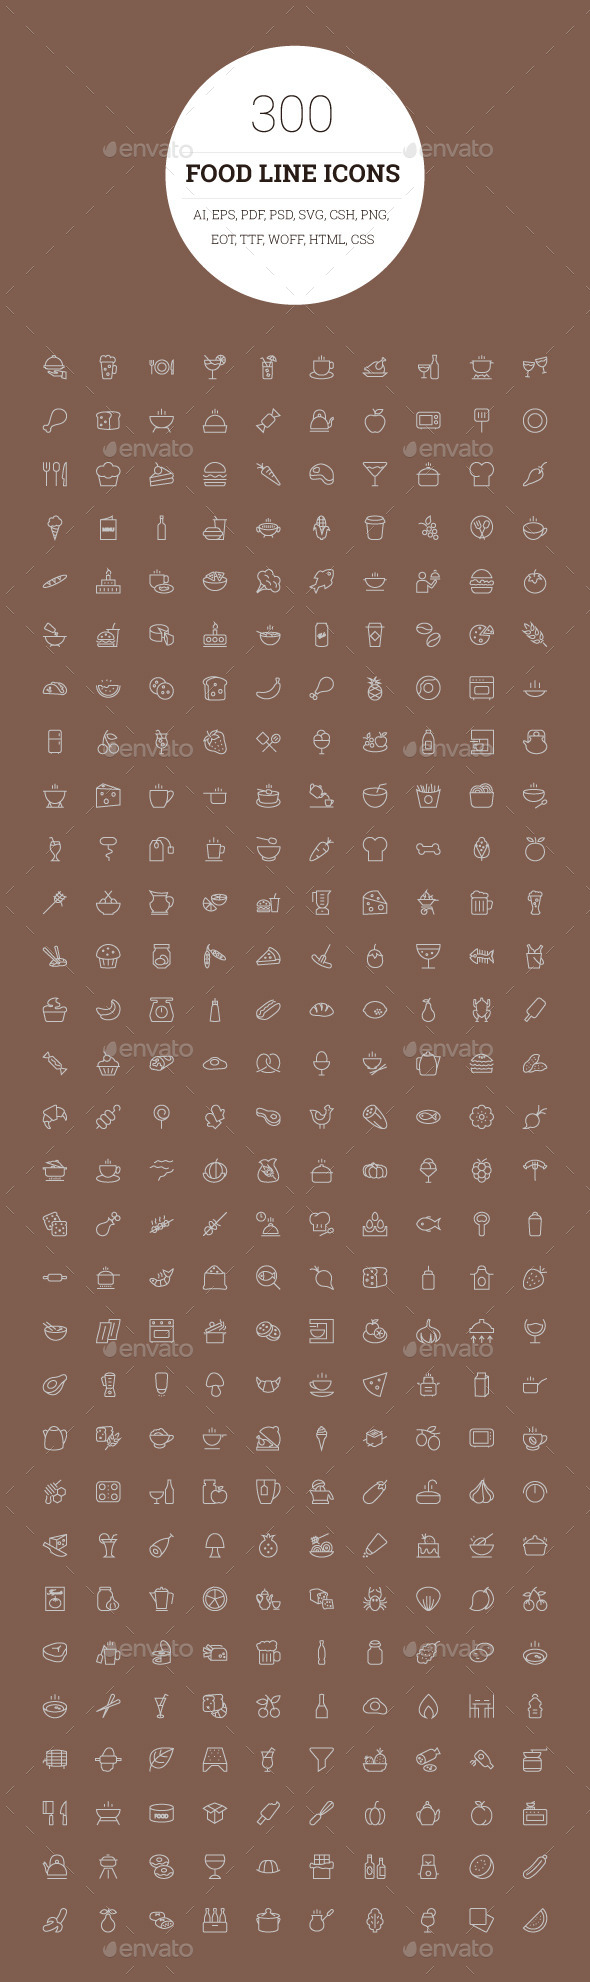 300 Food Line Icons - Food Objects